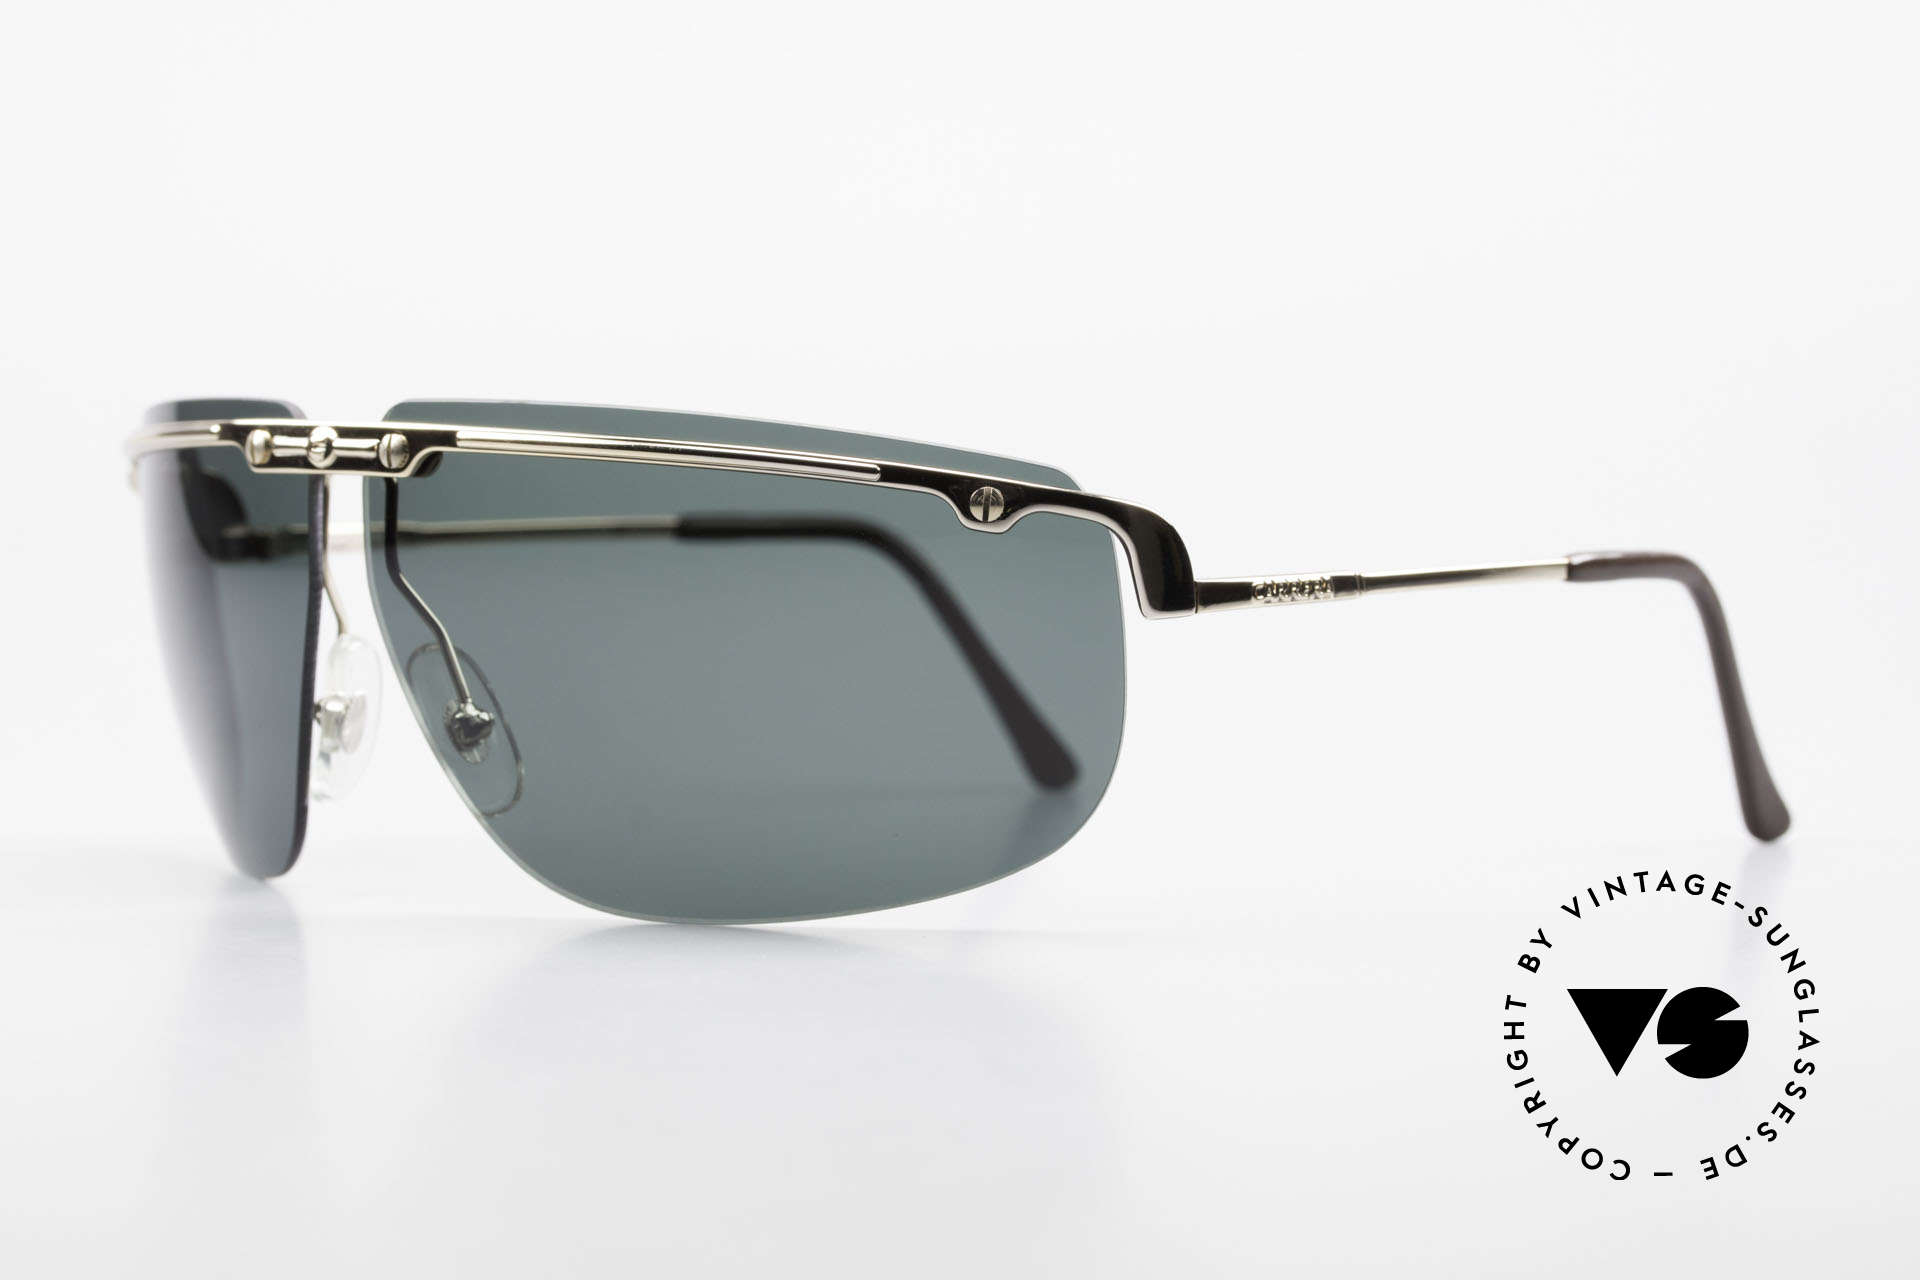 Carrera 5420 90's Wrap Sports Sunglasses, optimal eye PROTECTION from all angles of view, Made for Men